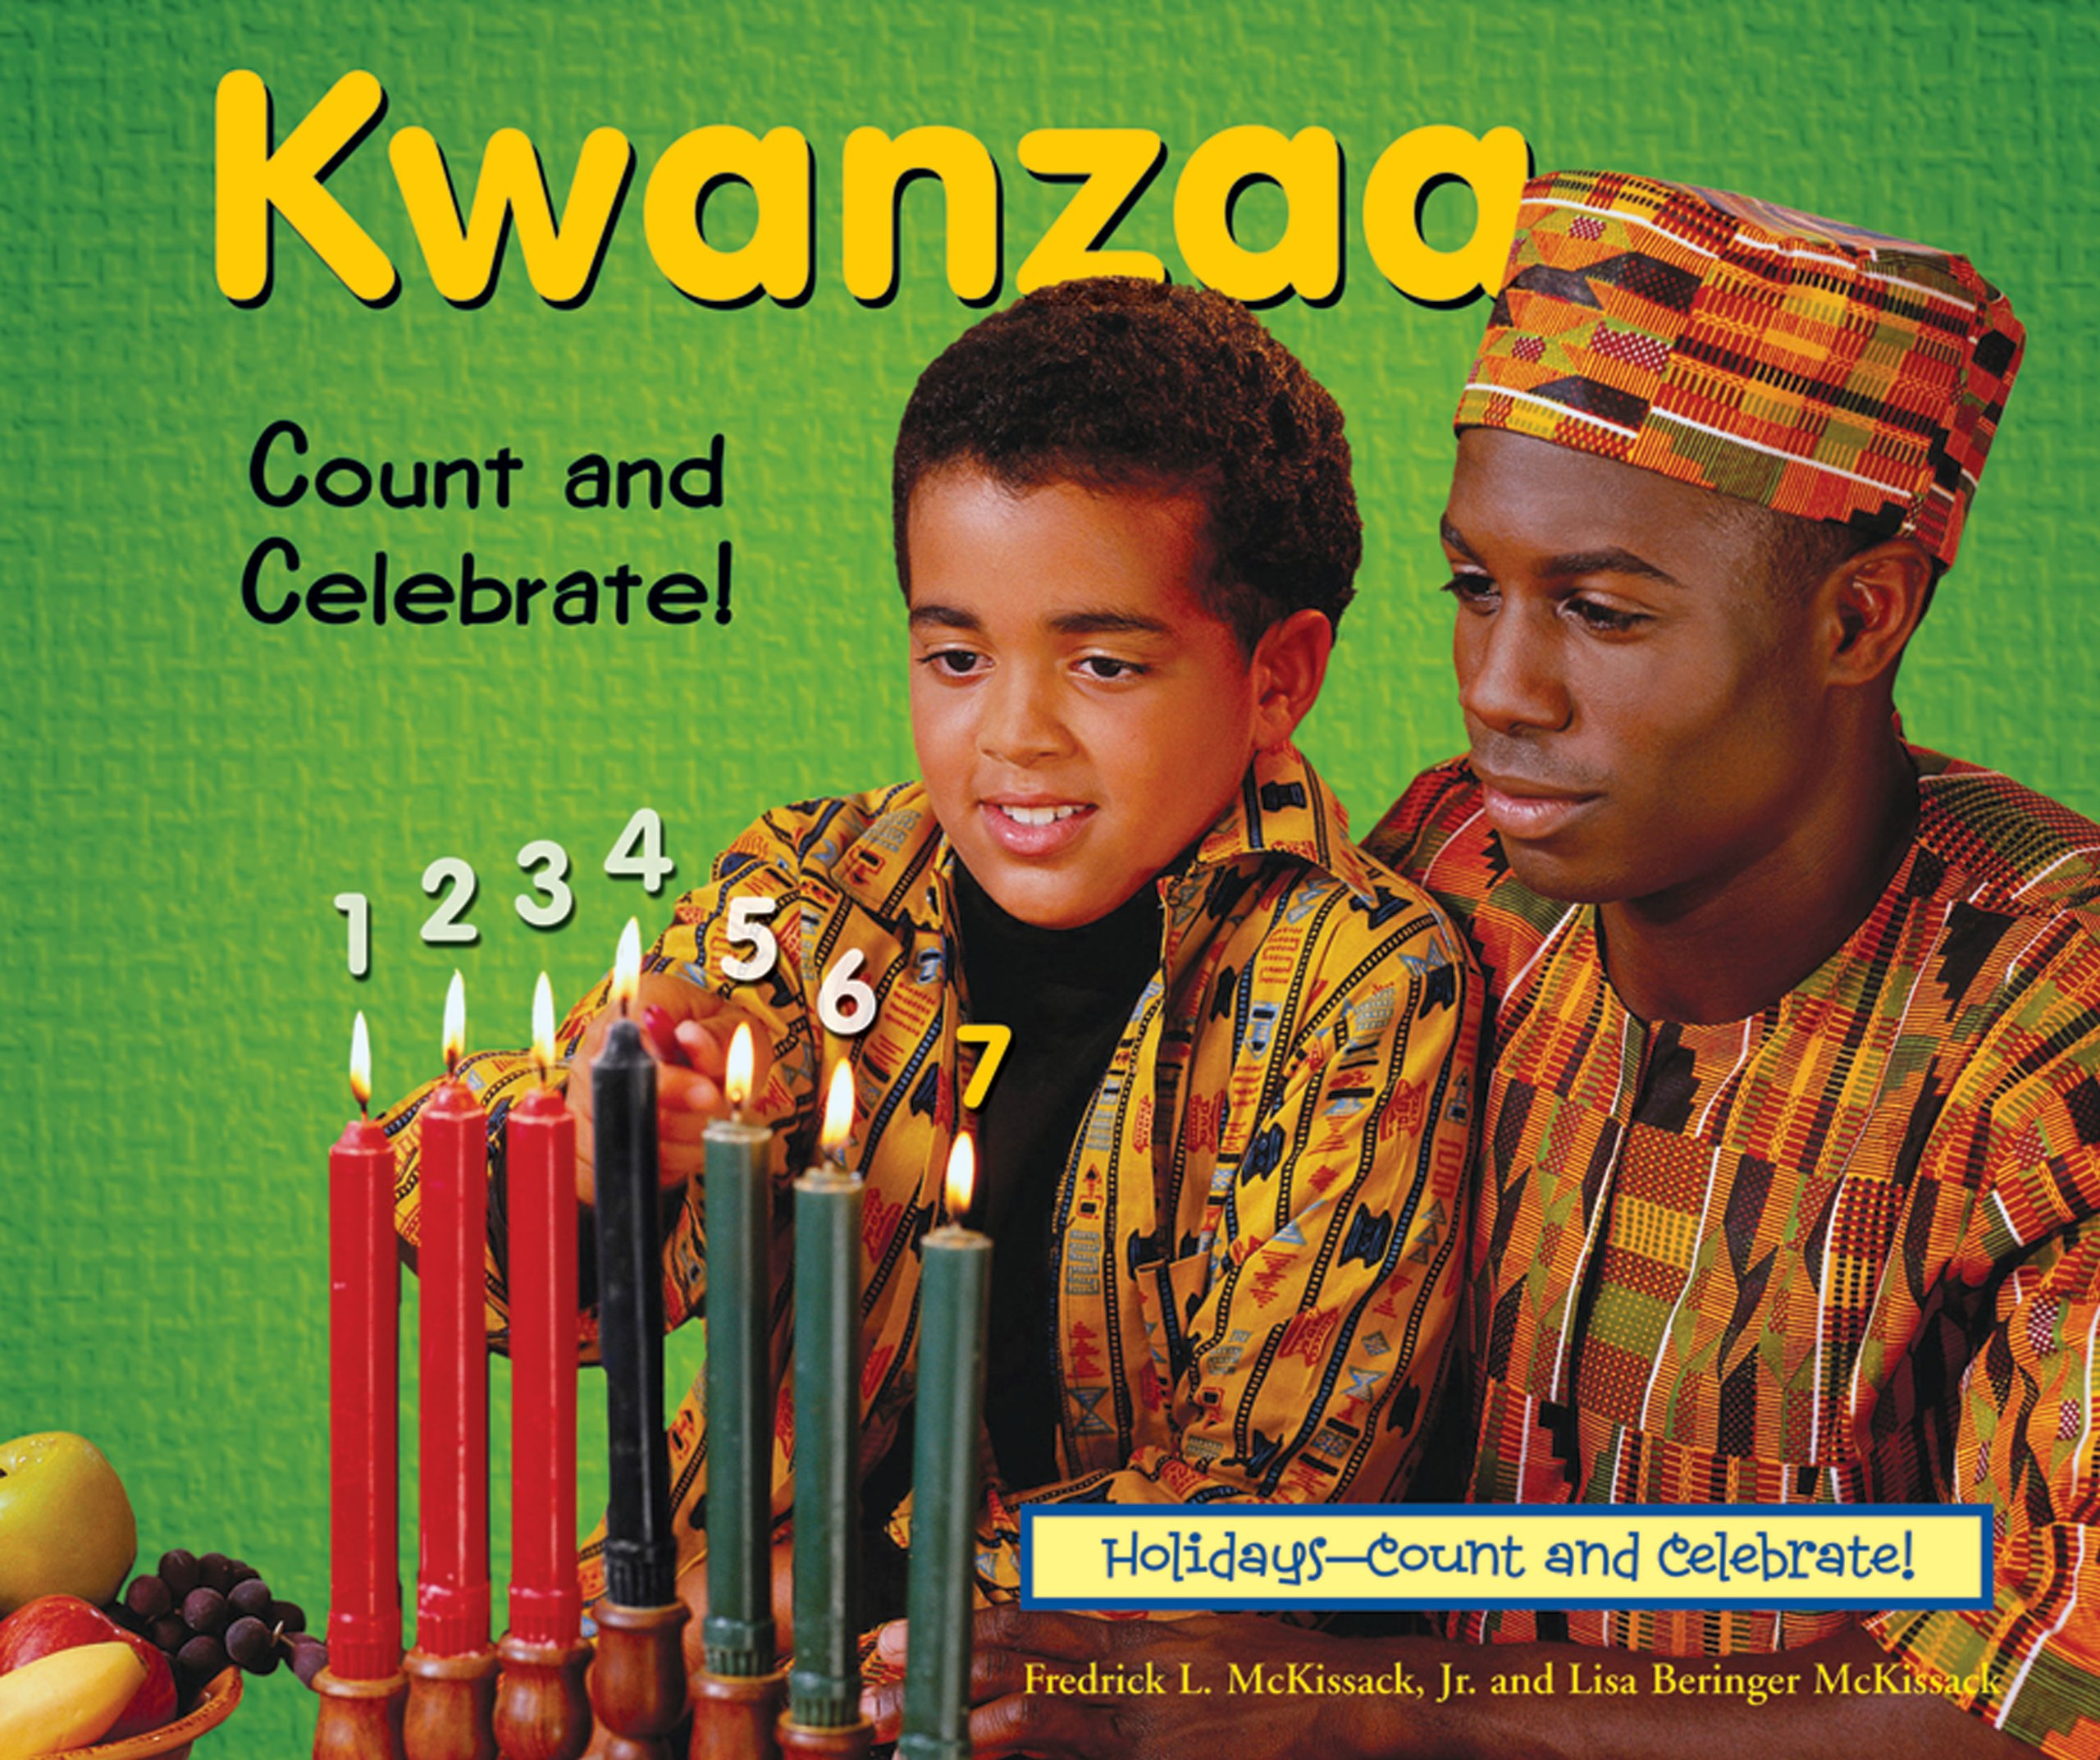 Kwanzaa-Count and Celebrate! (Holidays-Count and Celebrate!)